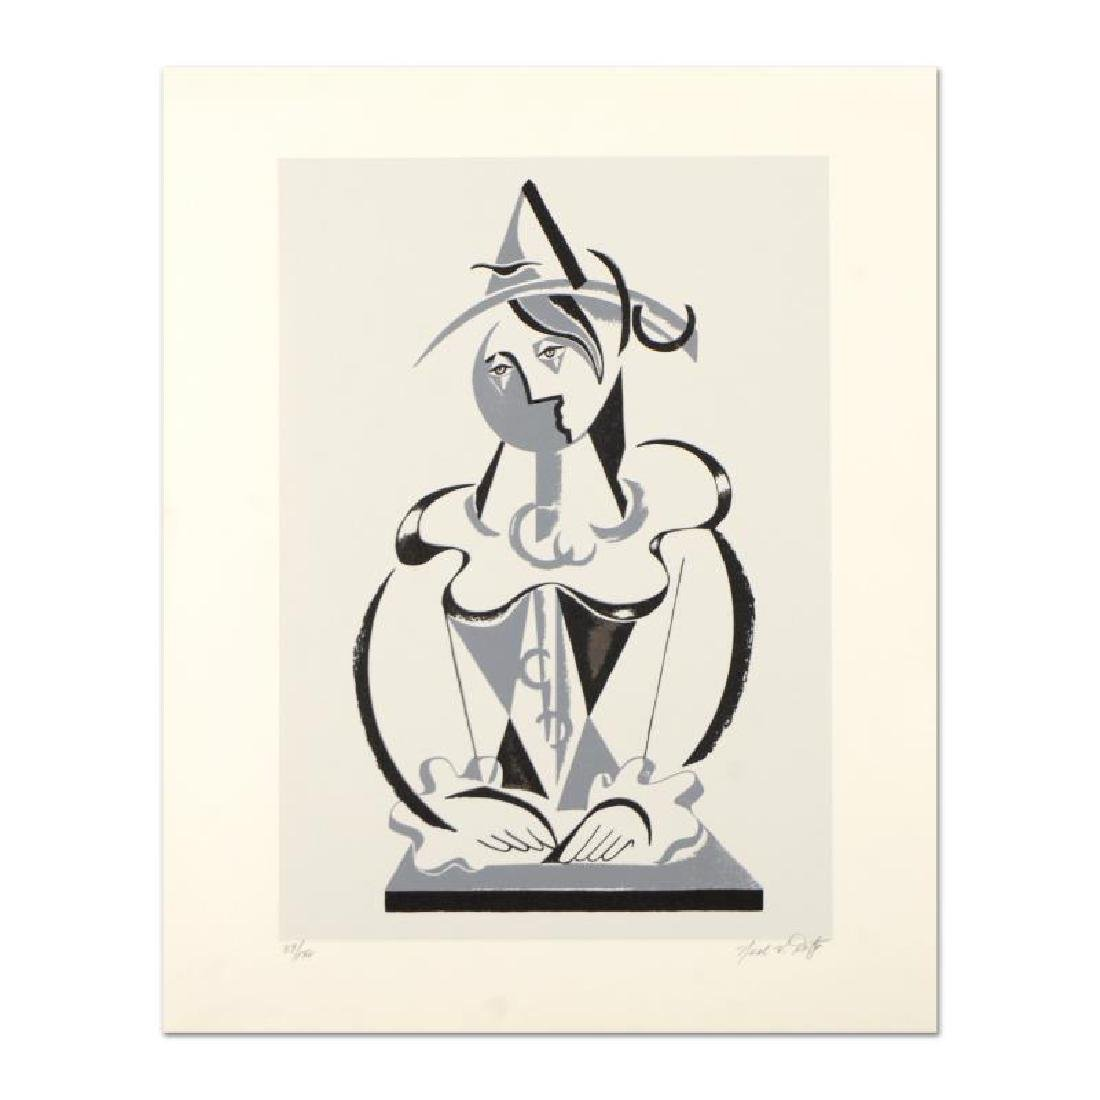 Picasso Man by Neal Doty (1941-2016)